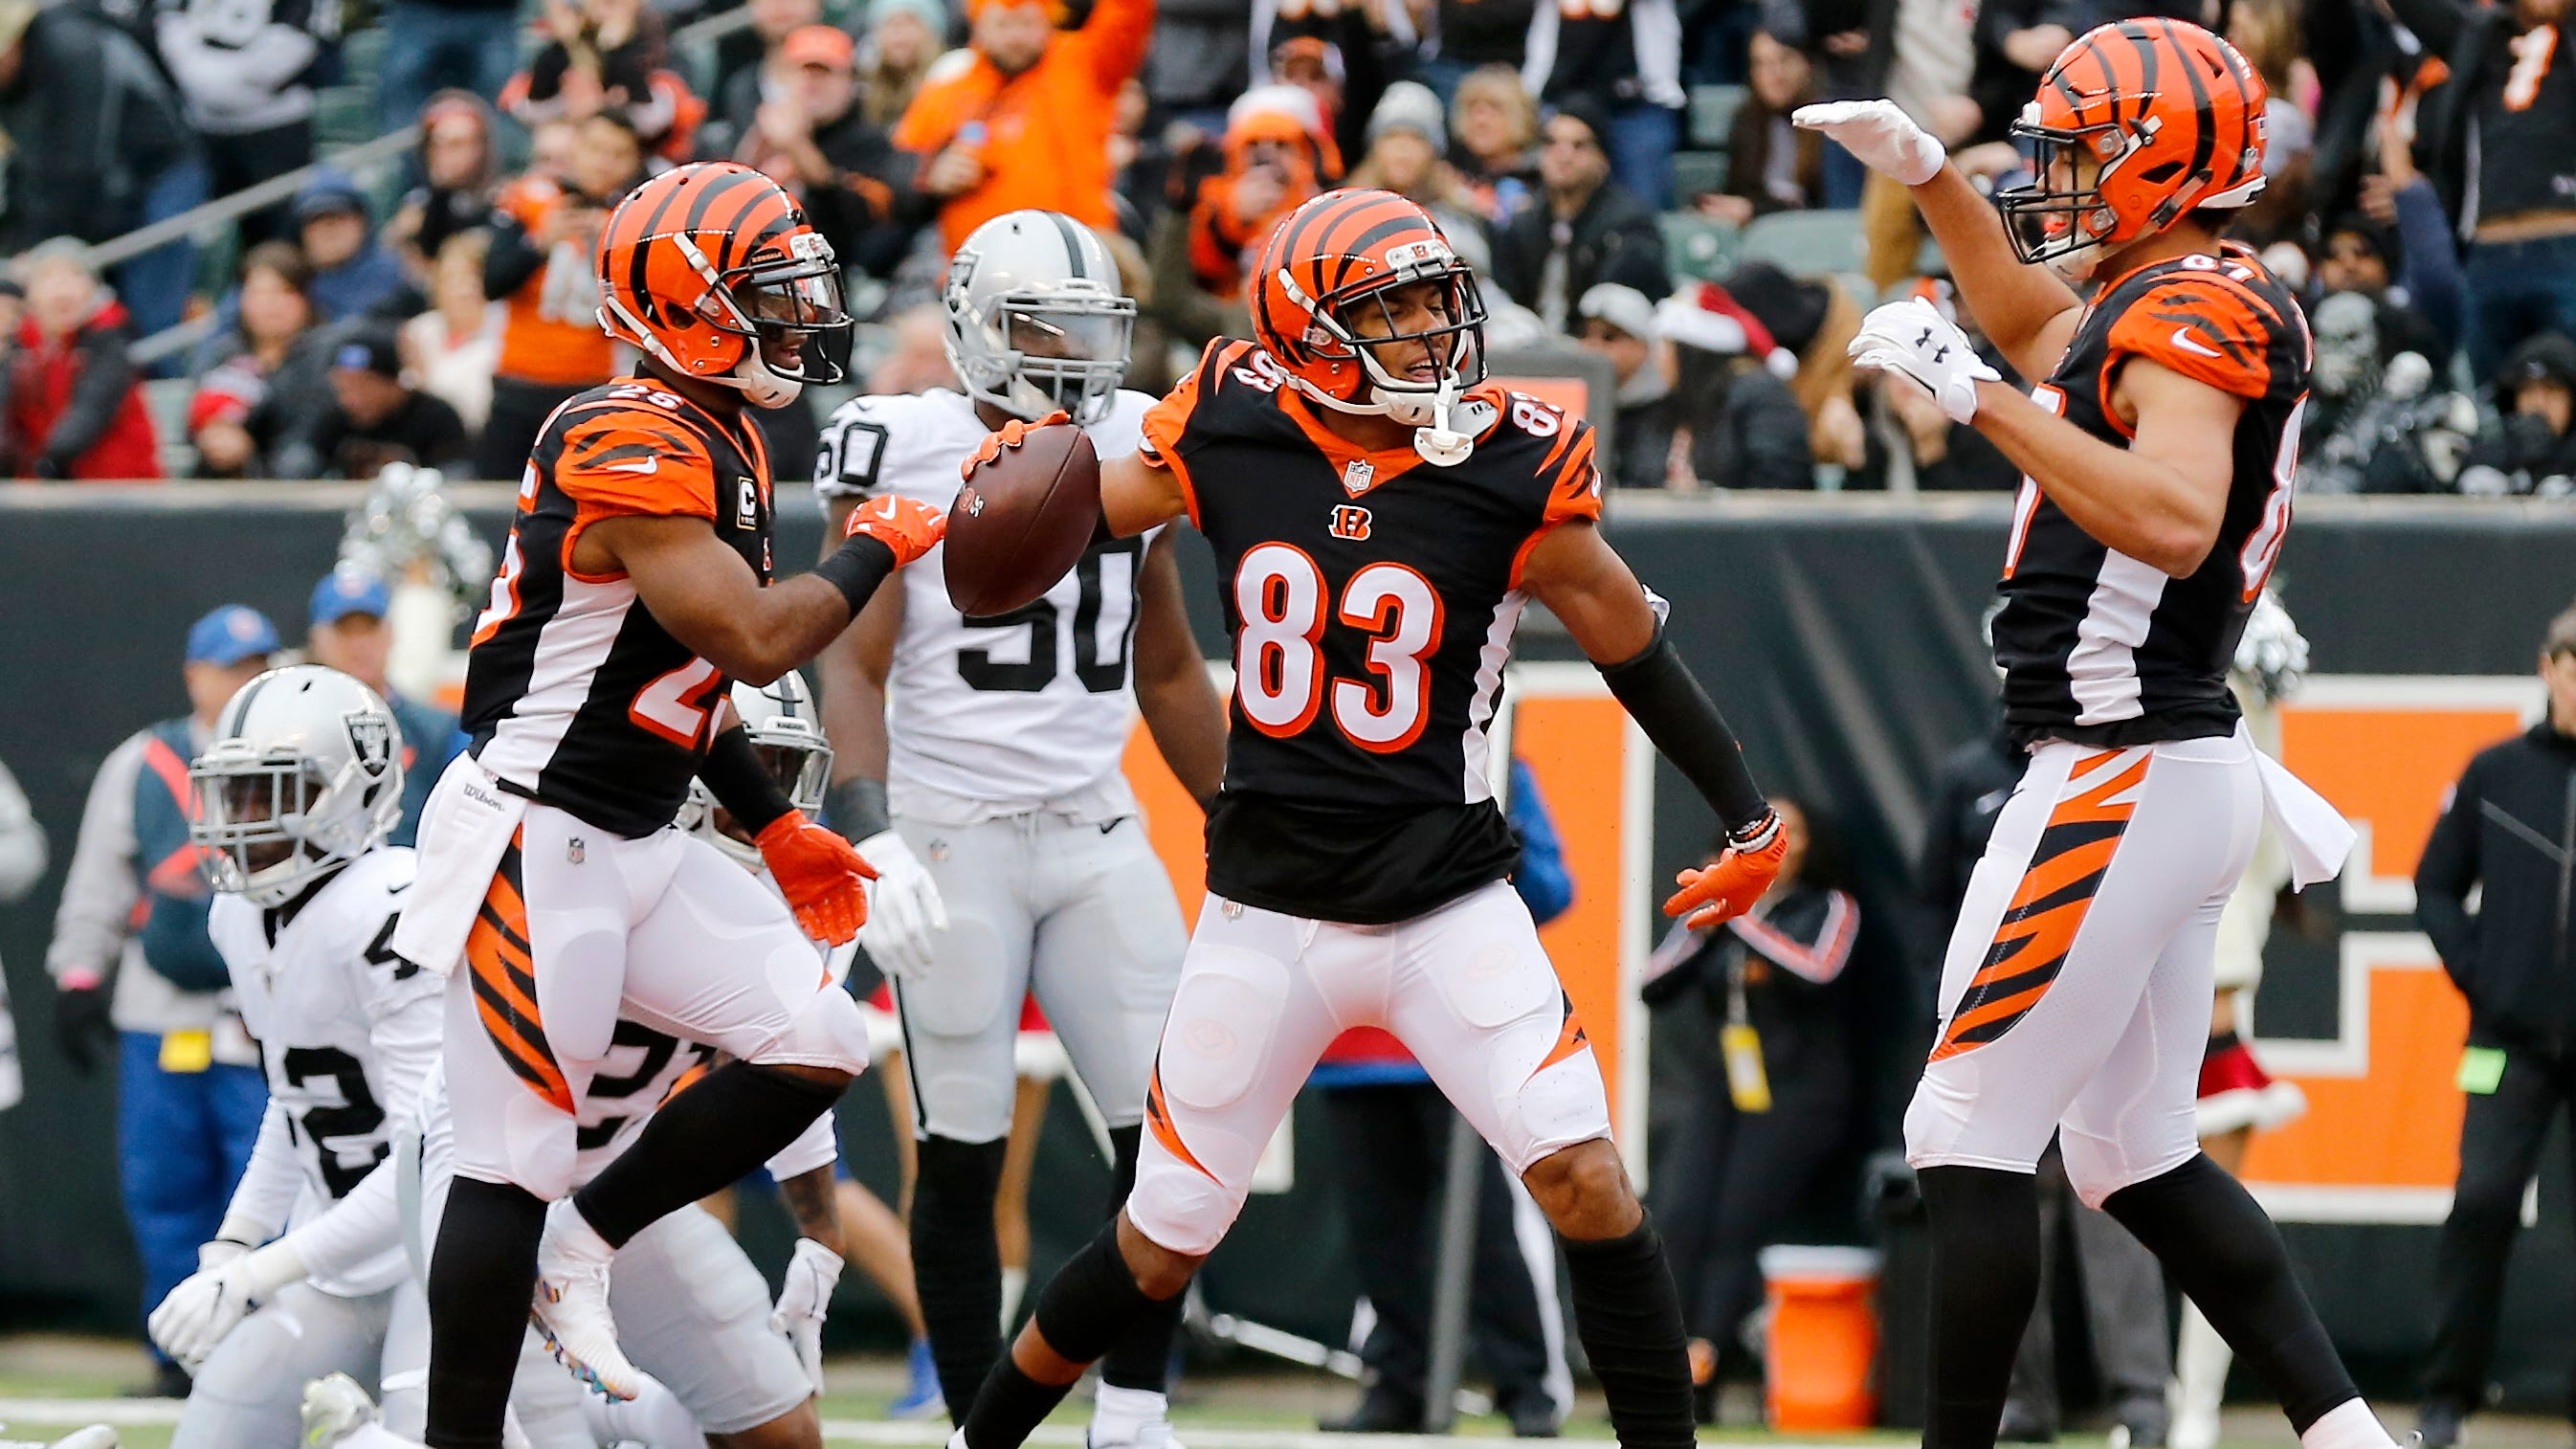 Cincinnati Bengals wide receiver Tyler Boyd (83) celebrates a touchdown reception in the first quarter of the NFL Week 15 game between the Cincinnati Bengals and the Oakland Raiders at Paul Brown Stadium in downtown Cincinnati on Sunday, Dec. 16, 2018. The Bengals led 20-7 at halftime.